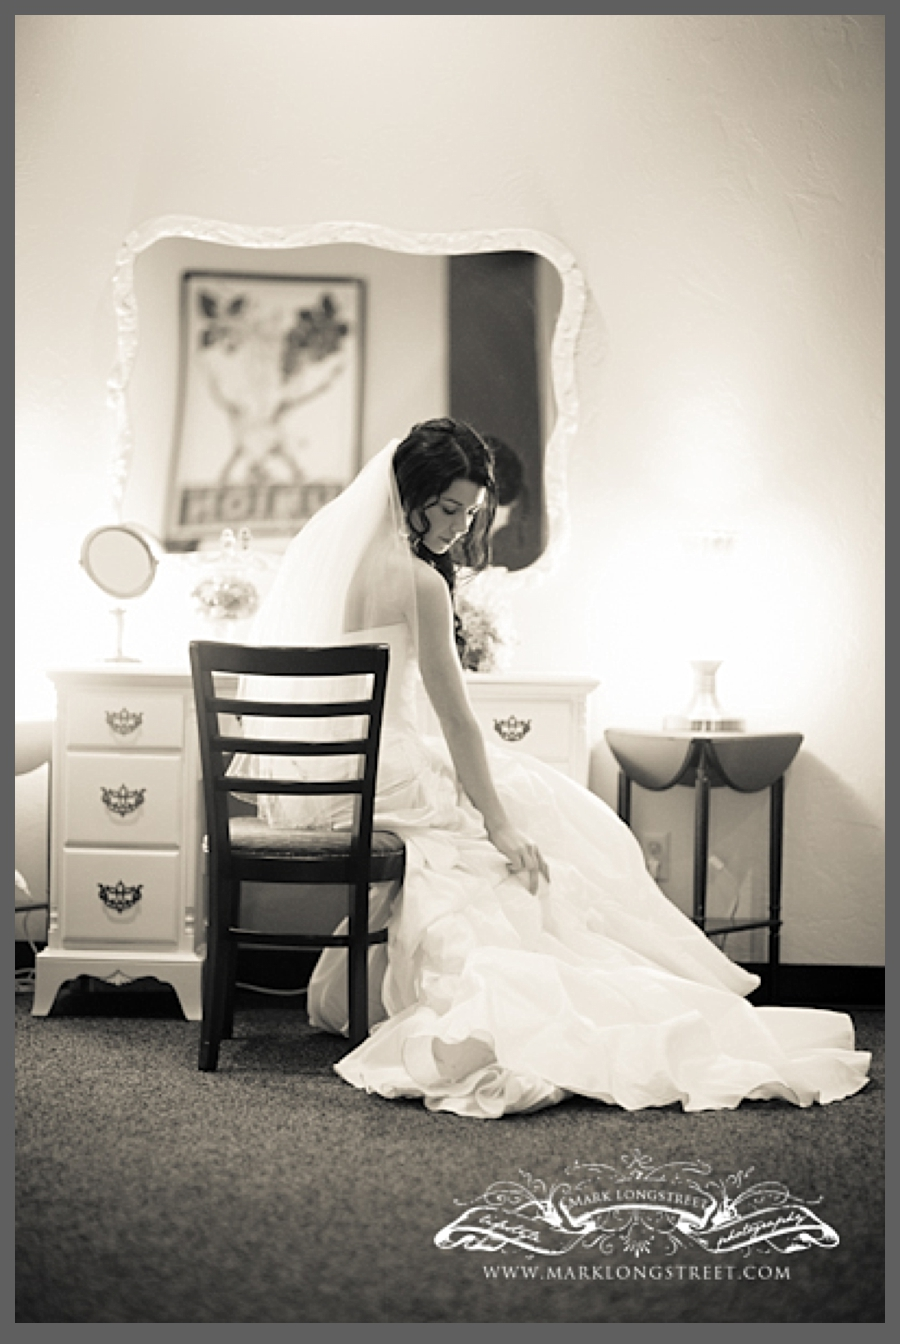 Promotional Shoot for Blush Bridal, Lewis and Clark Catering and Mark Longstreet Photography